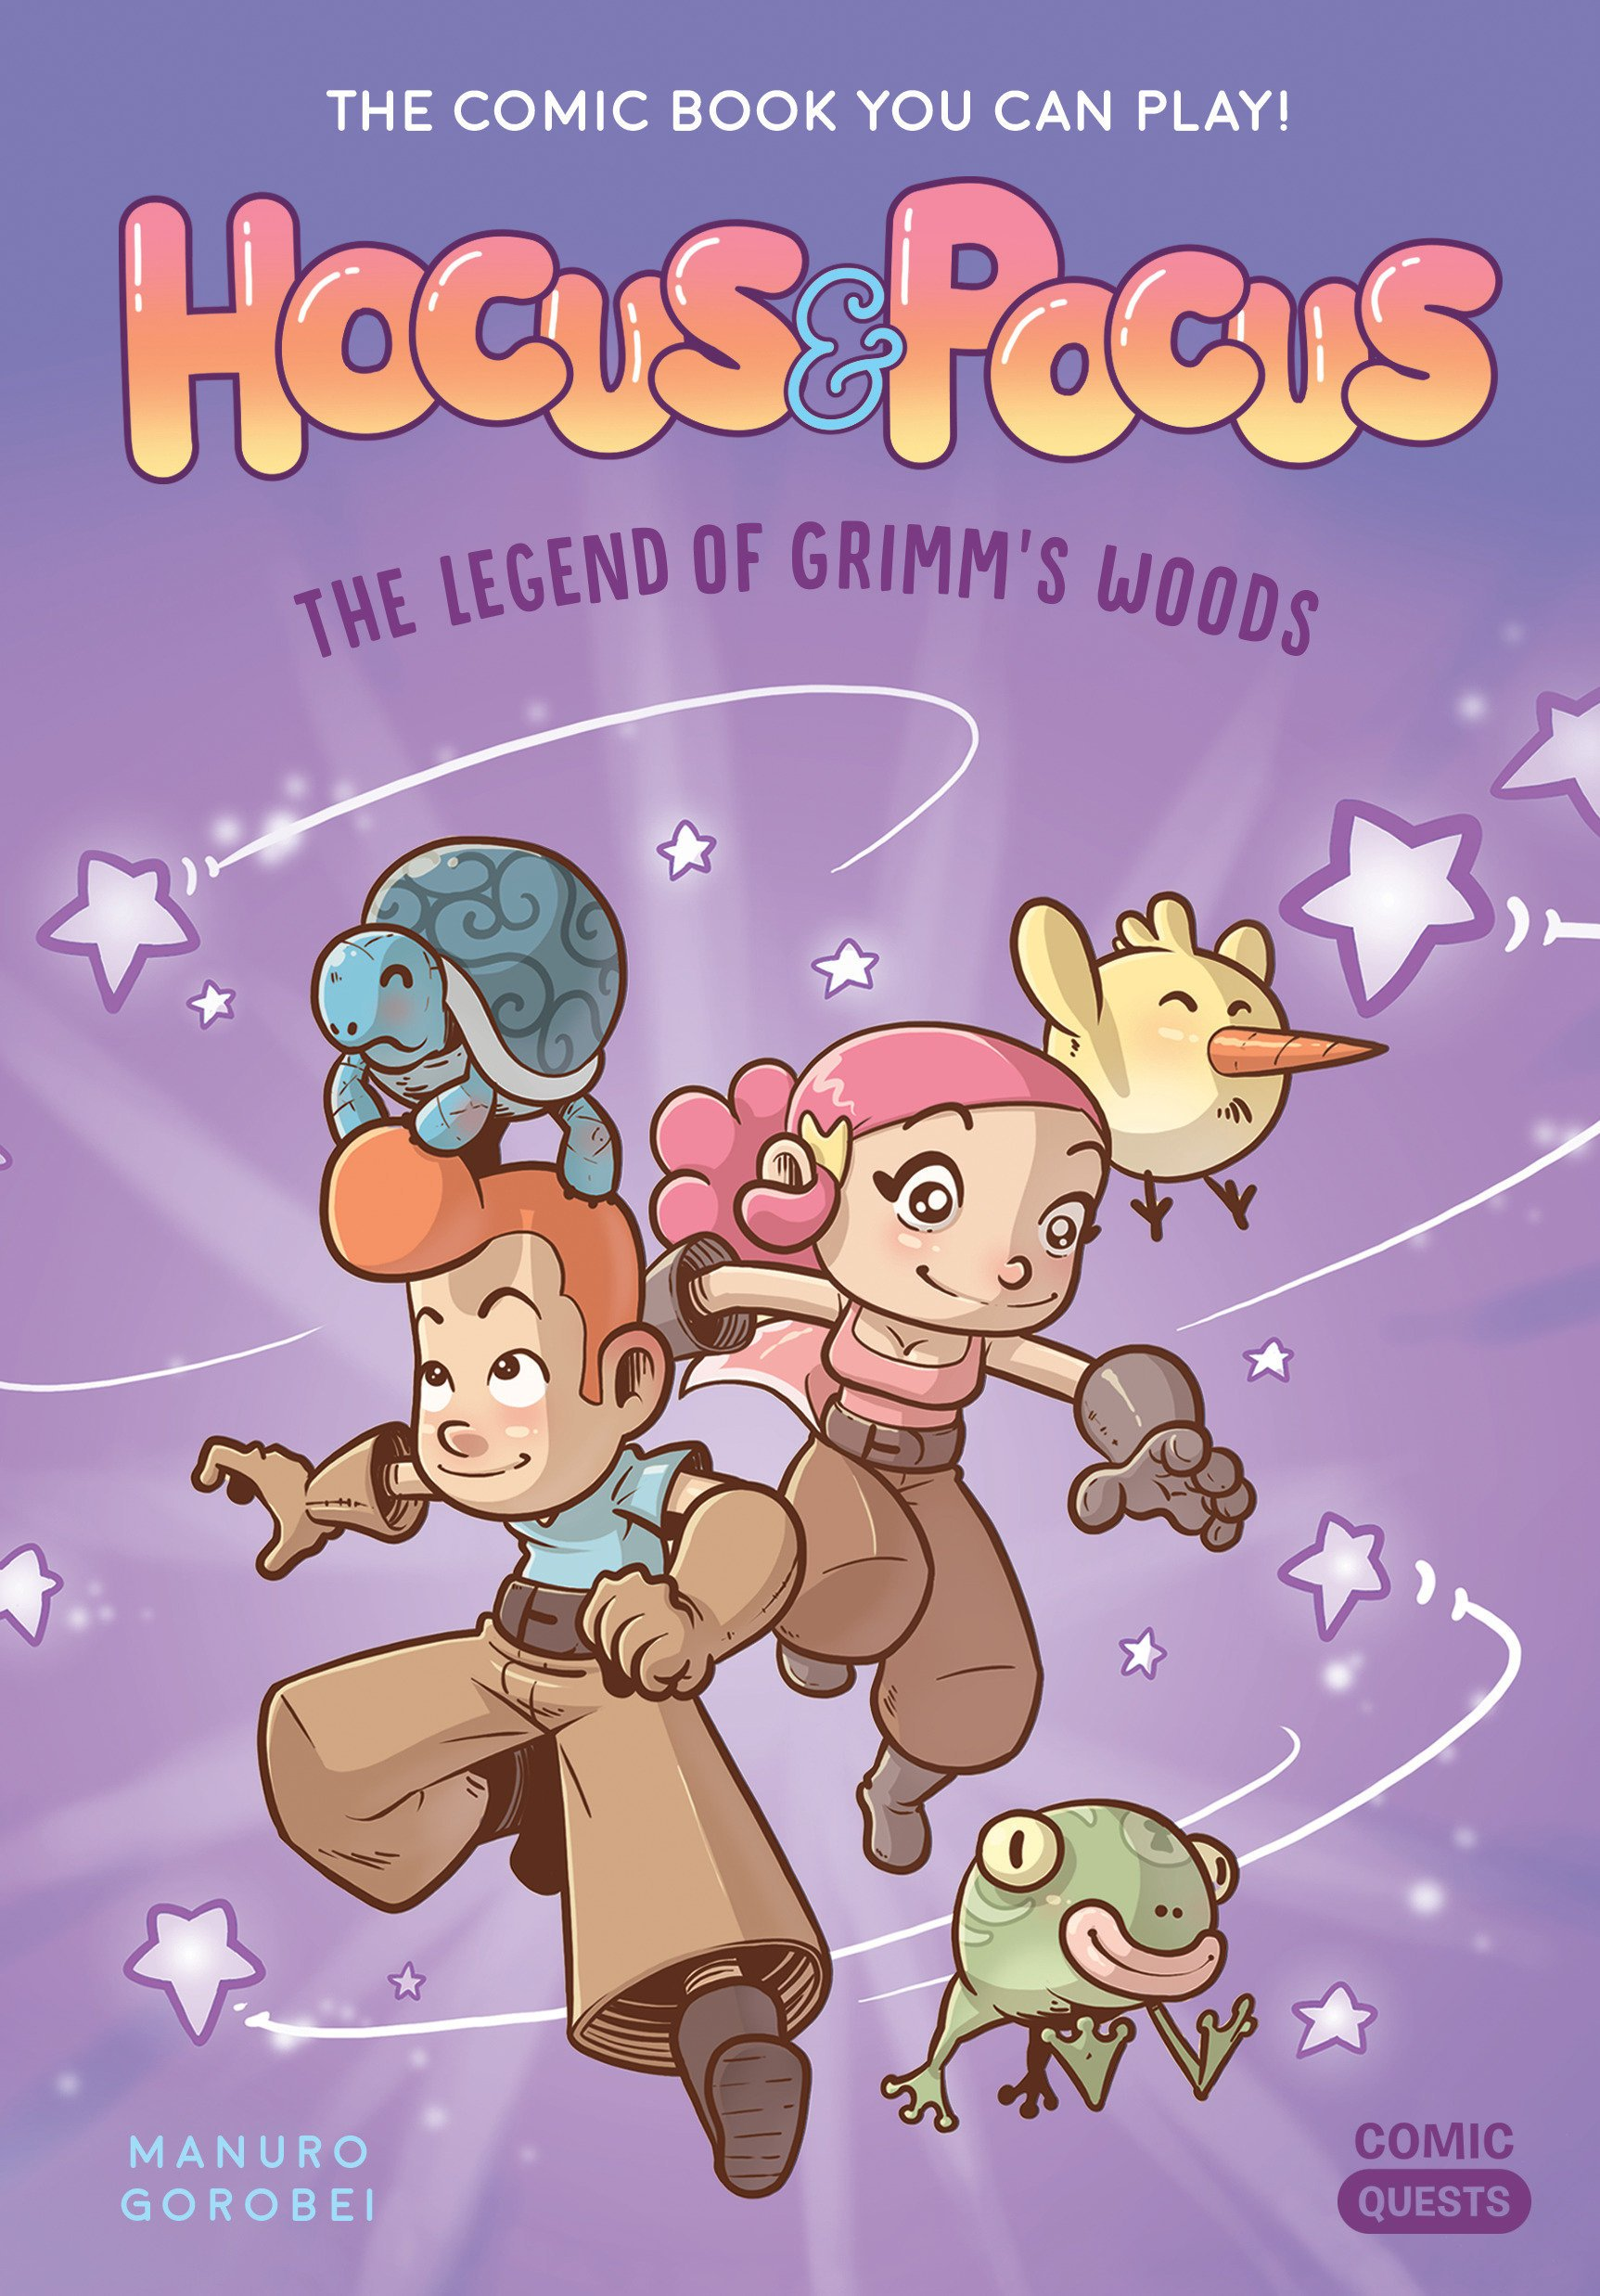 Comic Quests - Kids books you can play - hocus and pocus.jpg